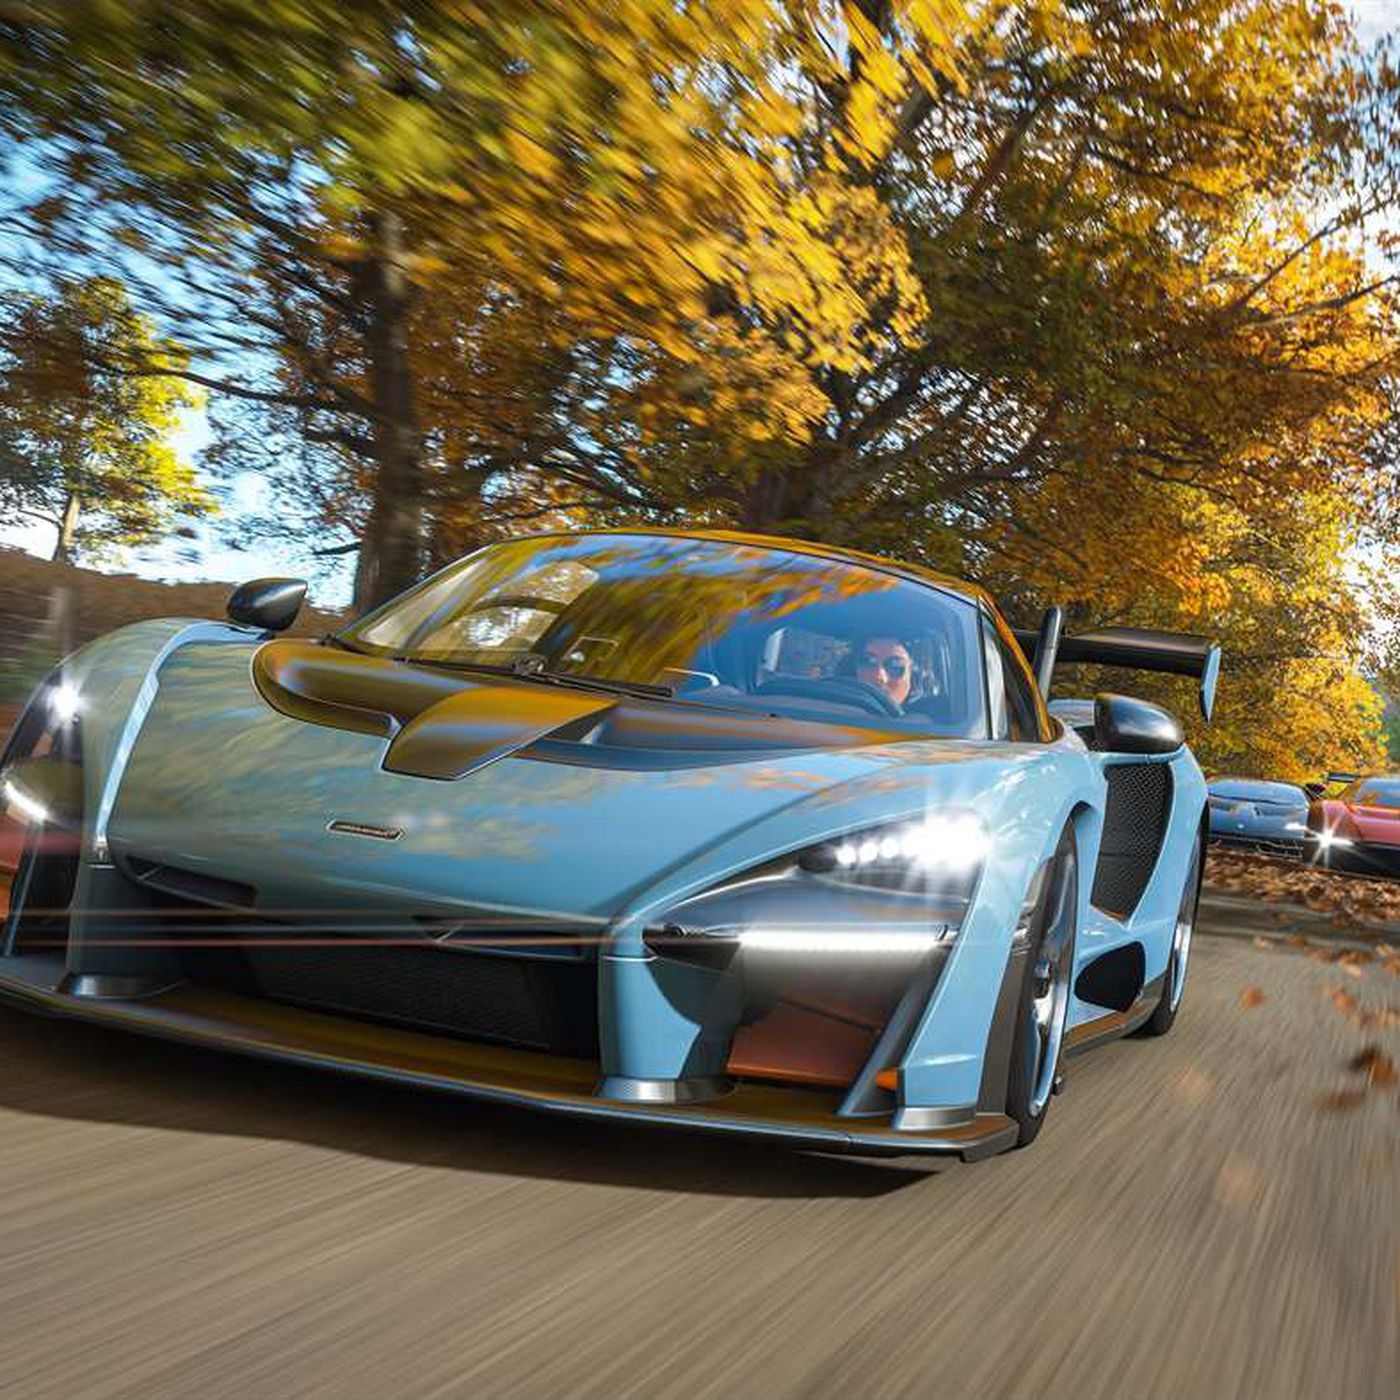 Forza Horizon 4 removes two dance emotes at the heart of